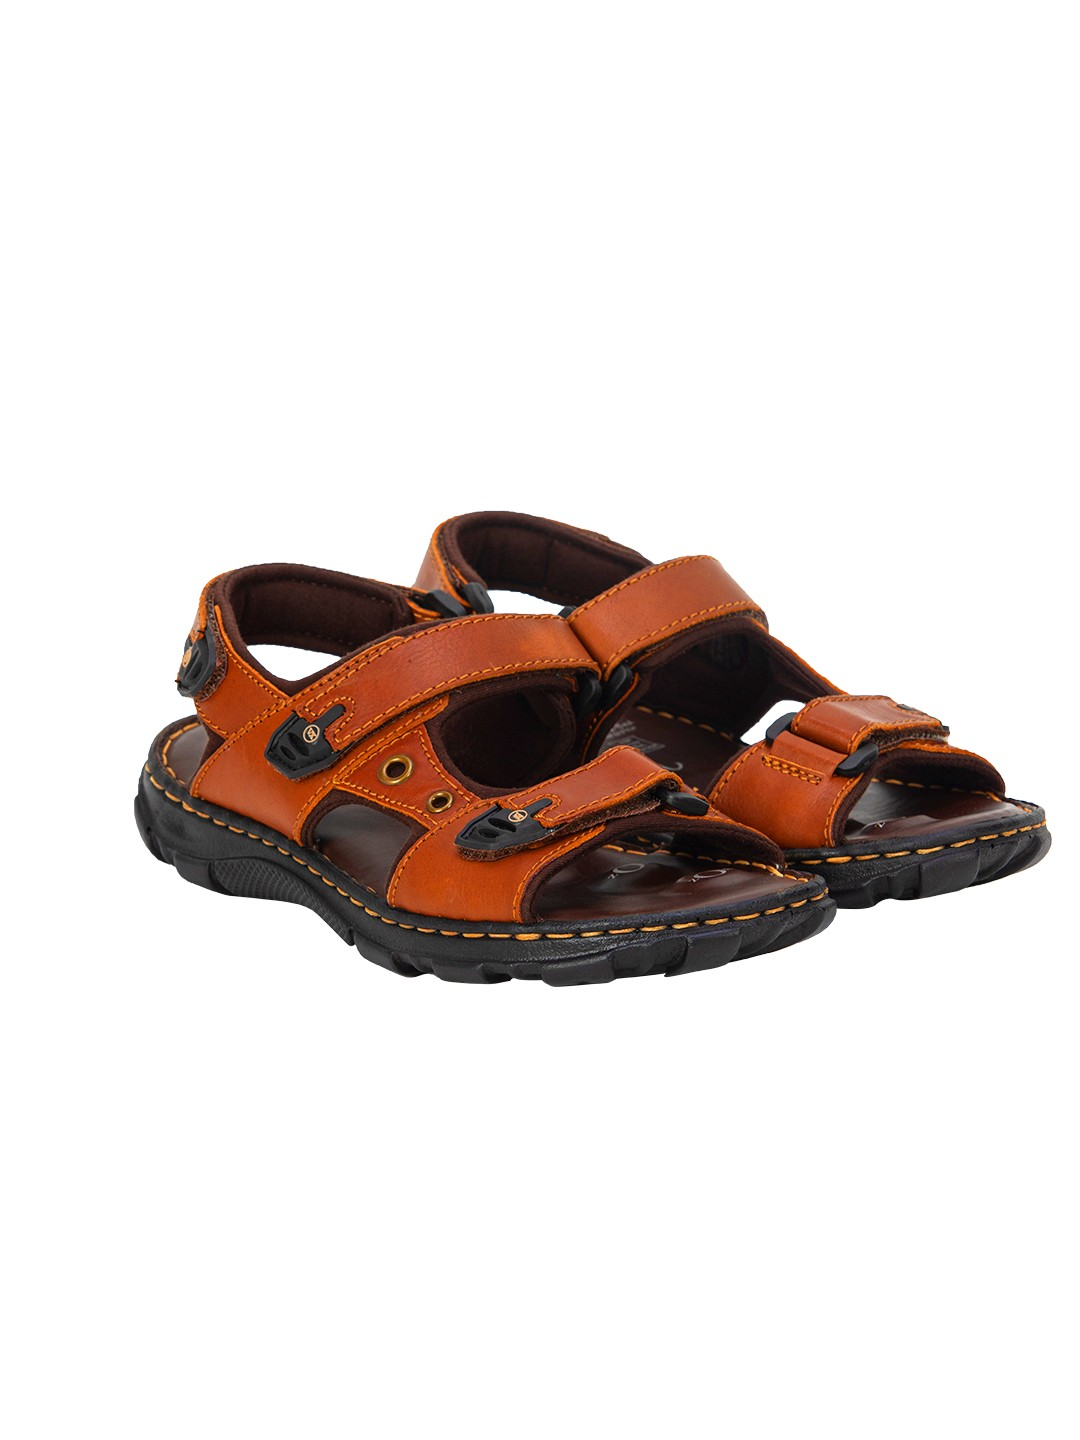 Buy VON WELLX KOZAN COMFORT TAN SANDALS In Delhi